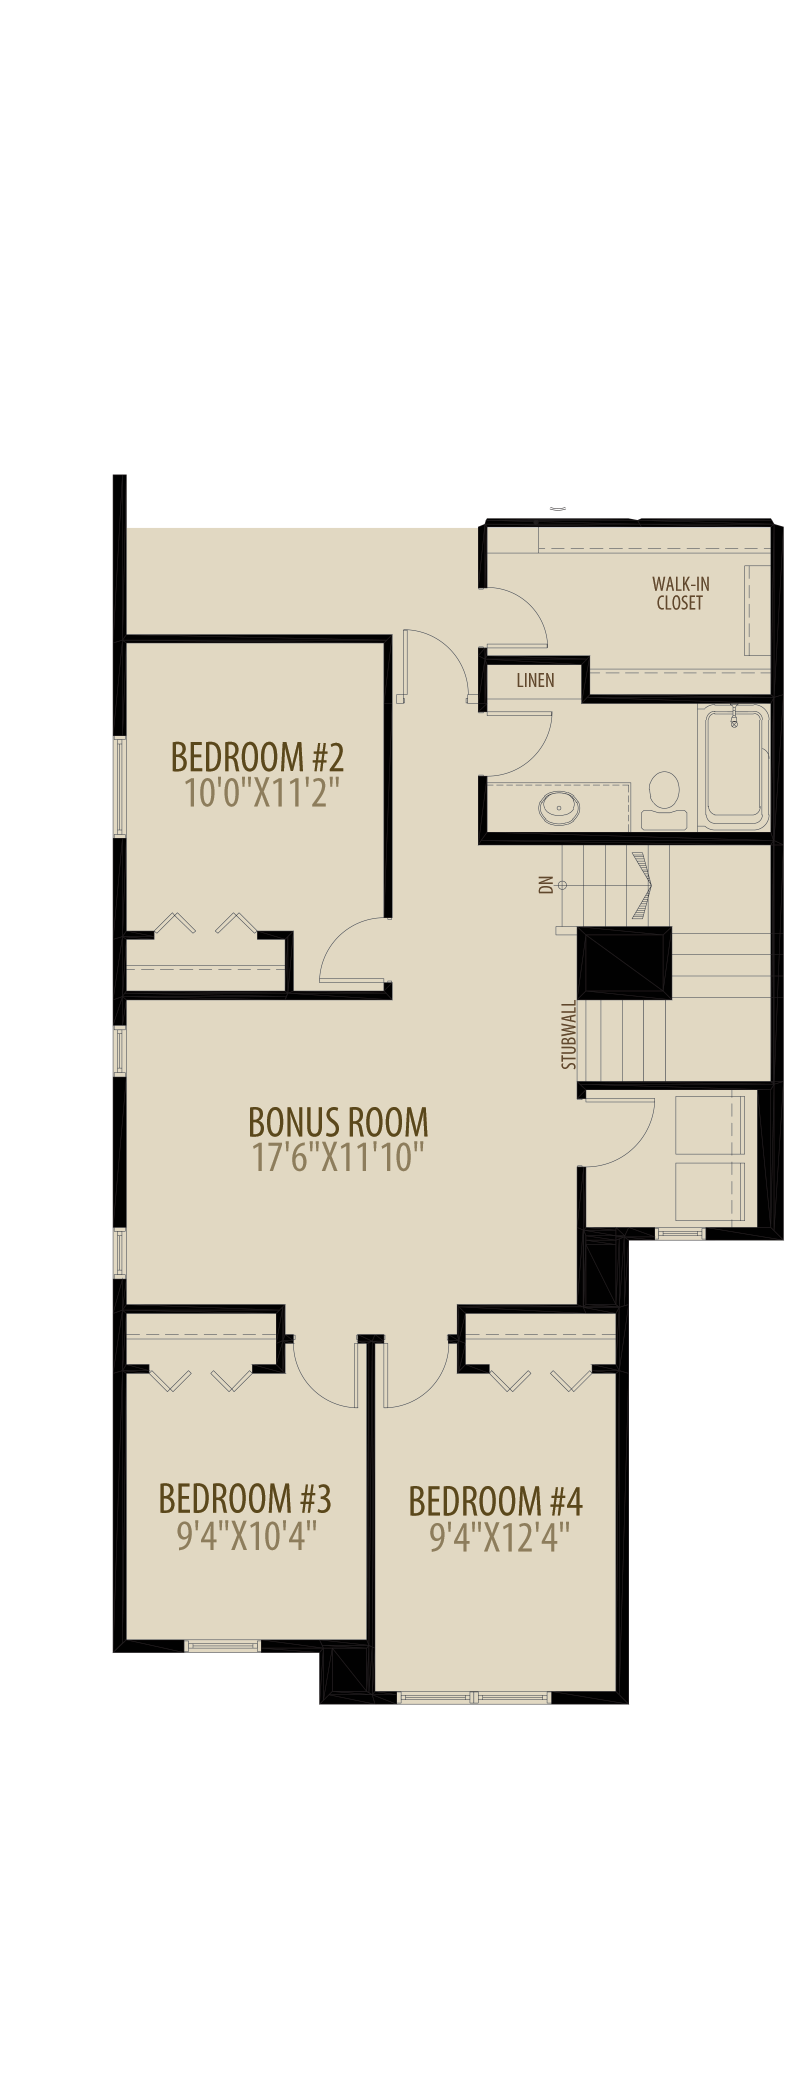 Optional 4th Bedroom Adds 104 sq ft